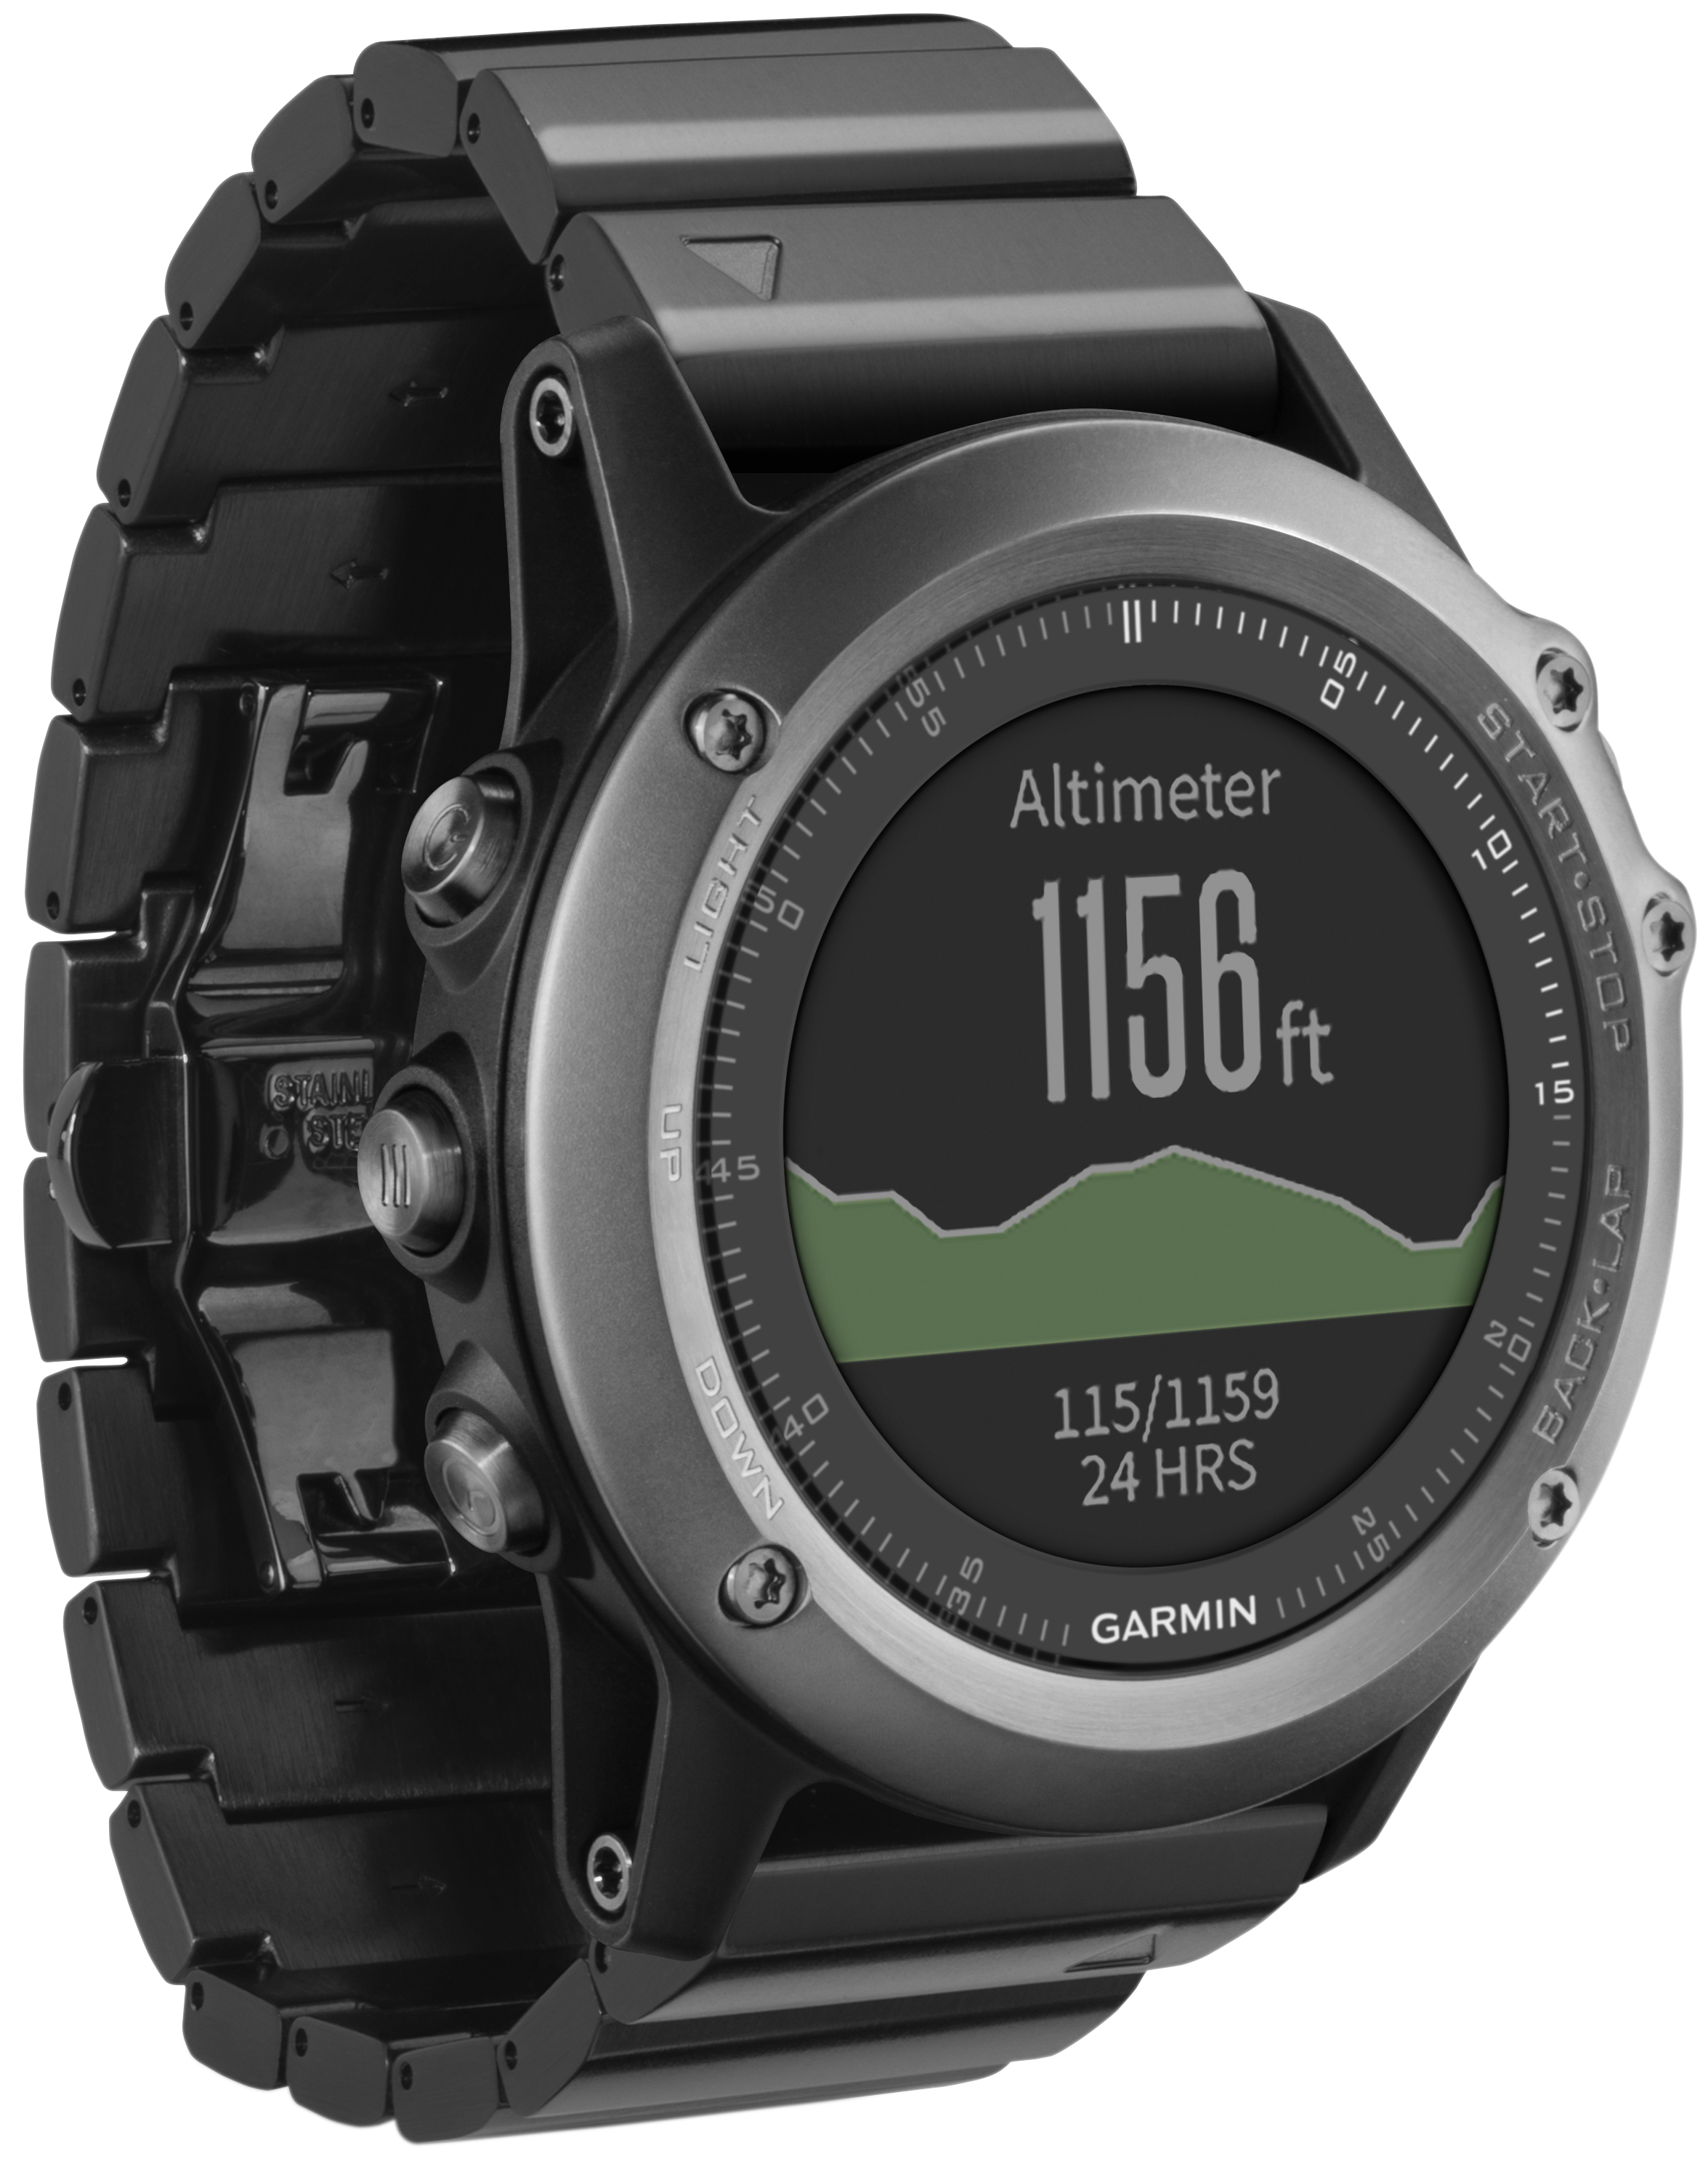 glonass s training explore adventure pin watches sport world watch garmin more gps and first